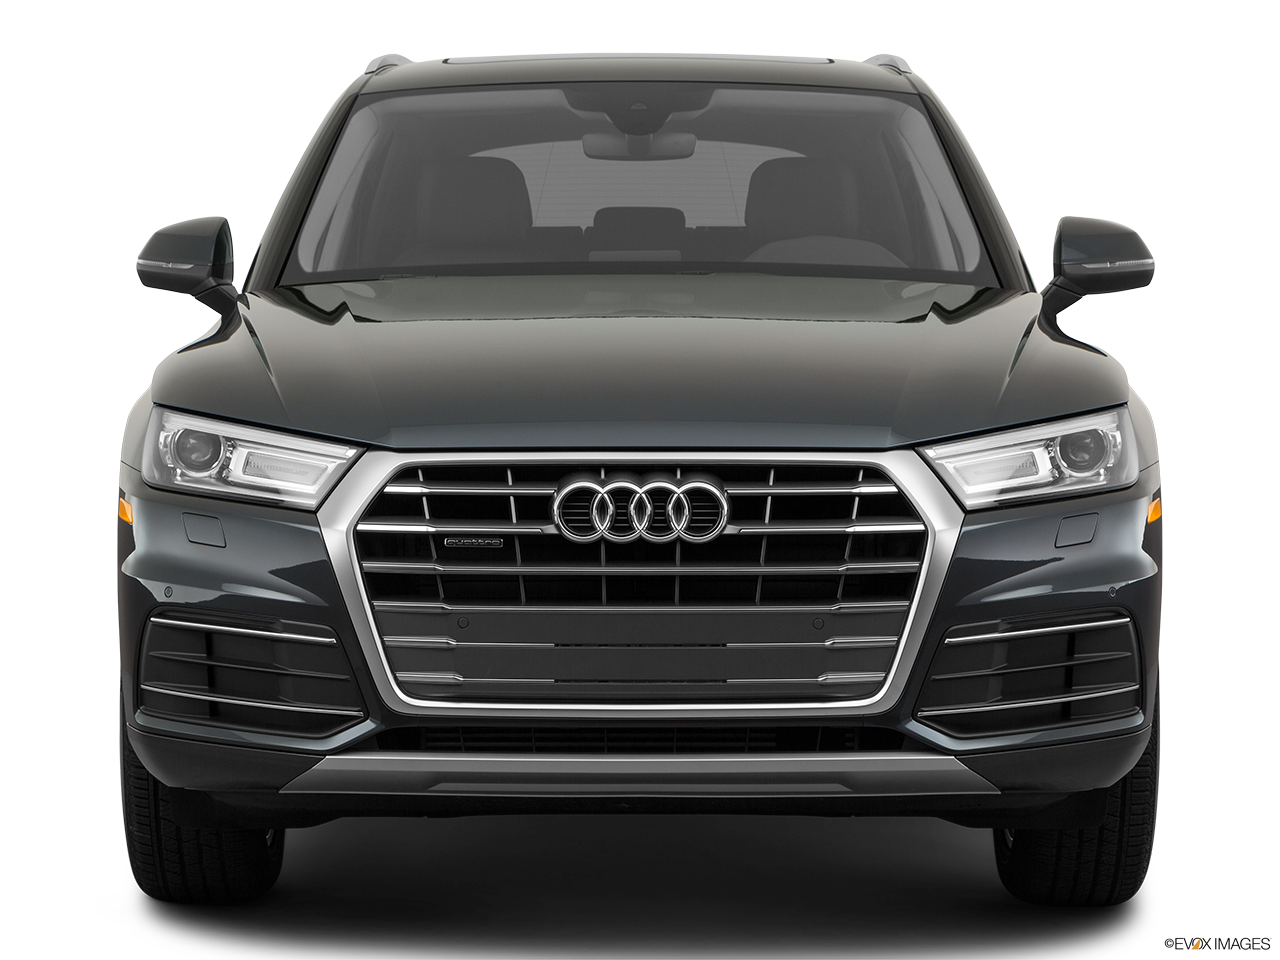 Front view of the Audi Q5 PHEV